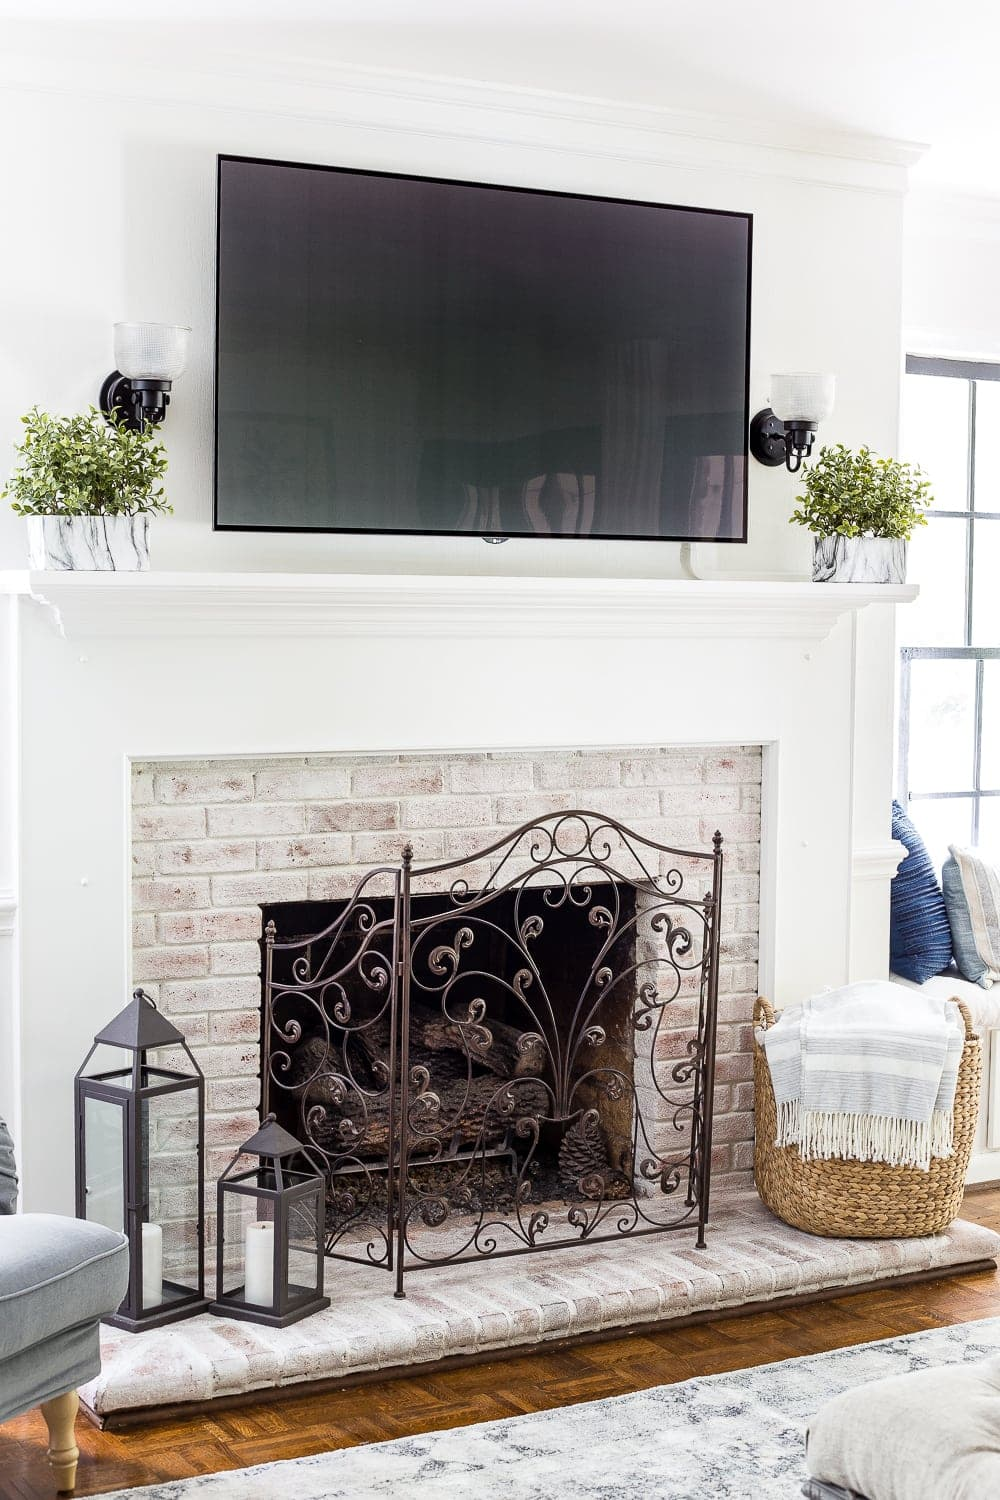 12 Ideas to Decorate Around a TV - Bless\'er House